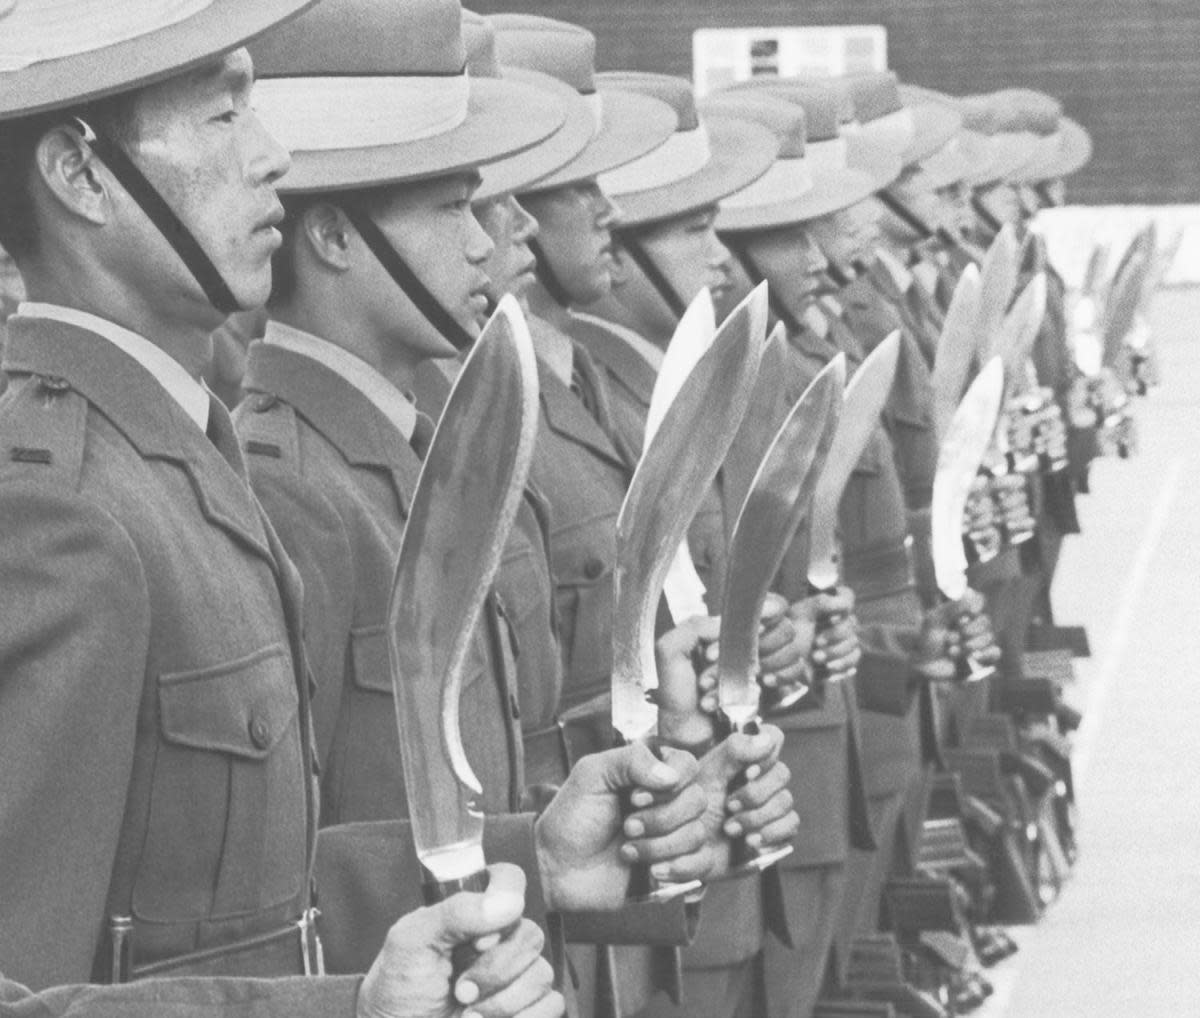 Gurkha troops with Khukuri knives, during a 1971 parade. (Credit: Chris Ware/Keystone/Hulton Archive/Getty Images)